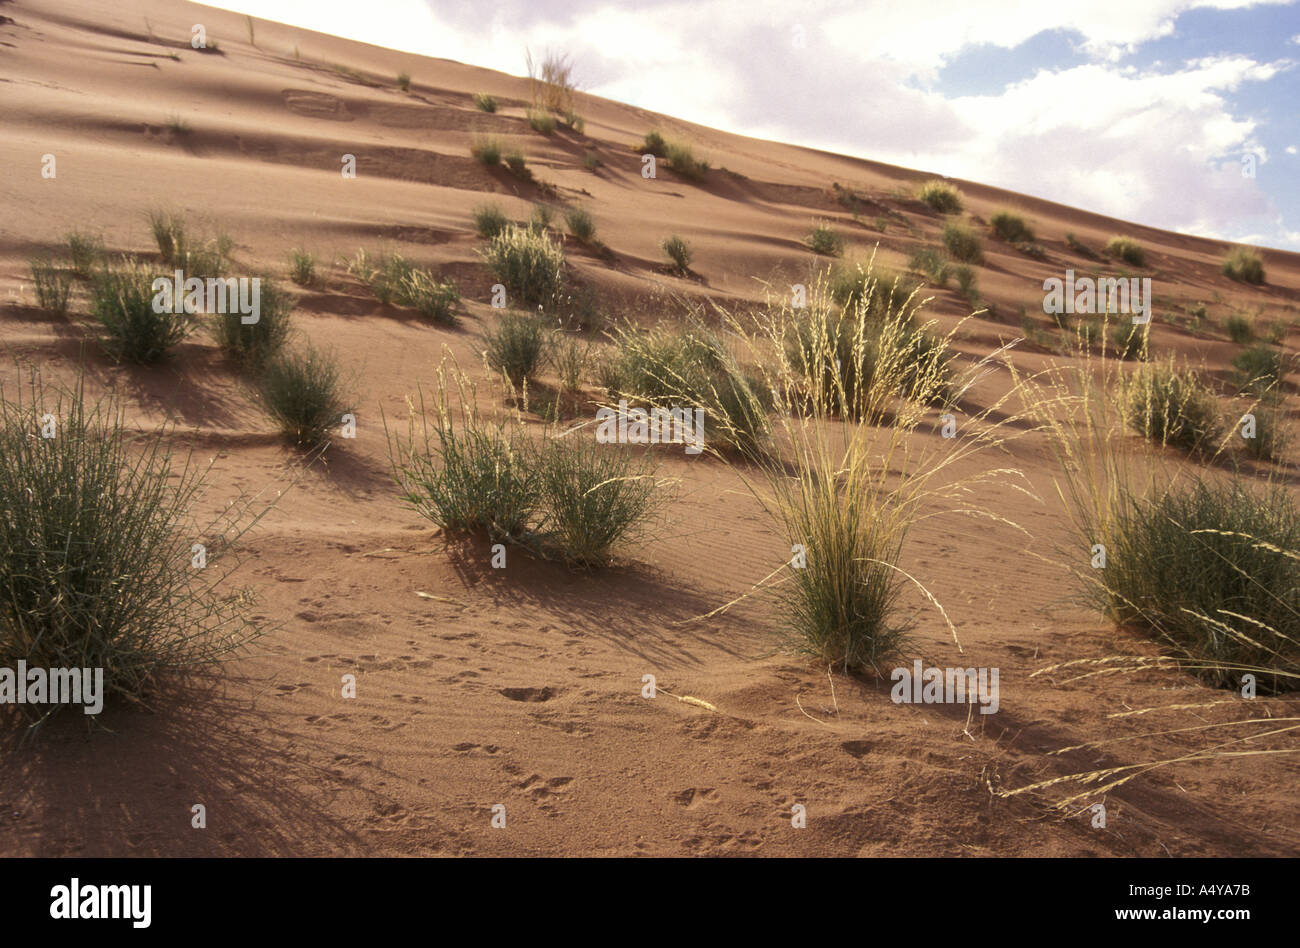 Desert grasses growing on a sand dune in the Namib Naukluft National Park Namibia in south west Africa - Stock Image